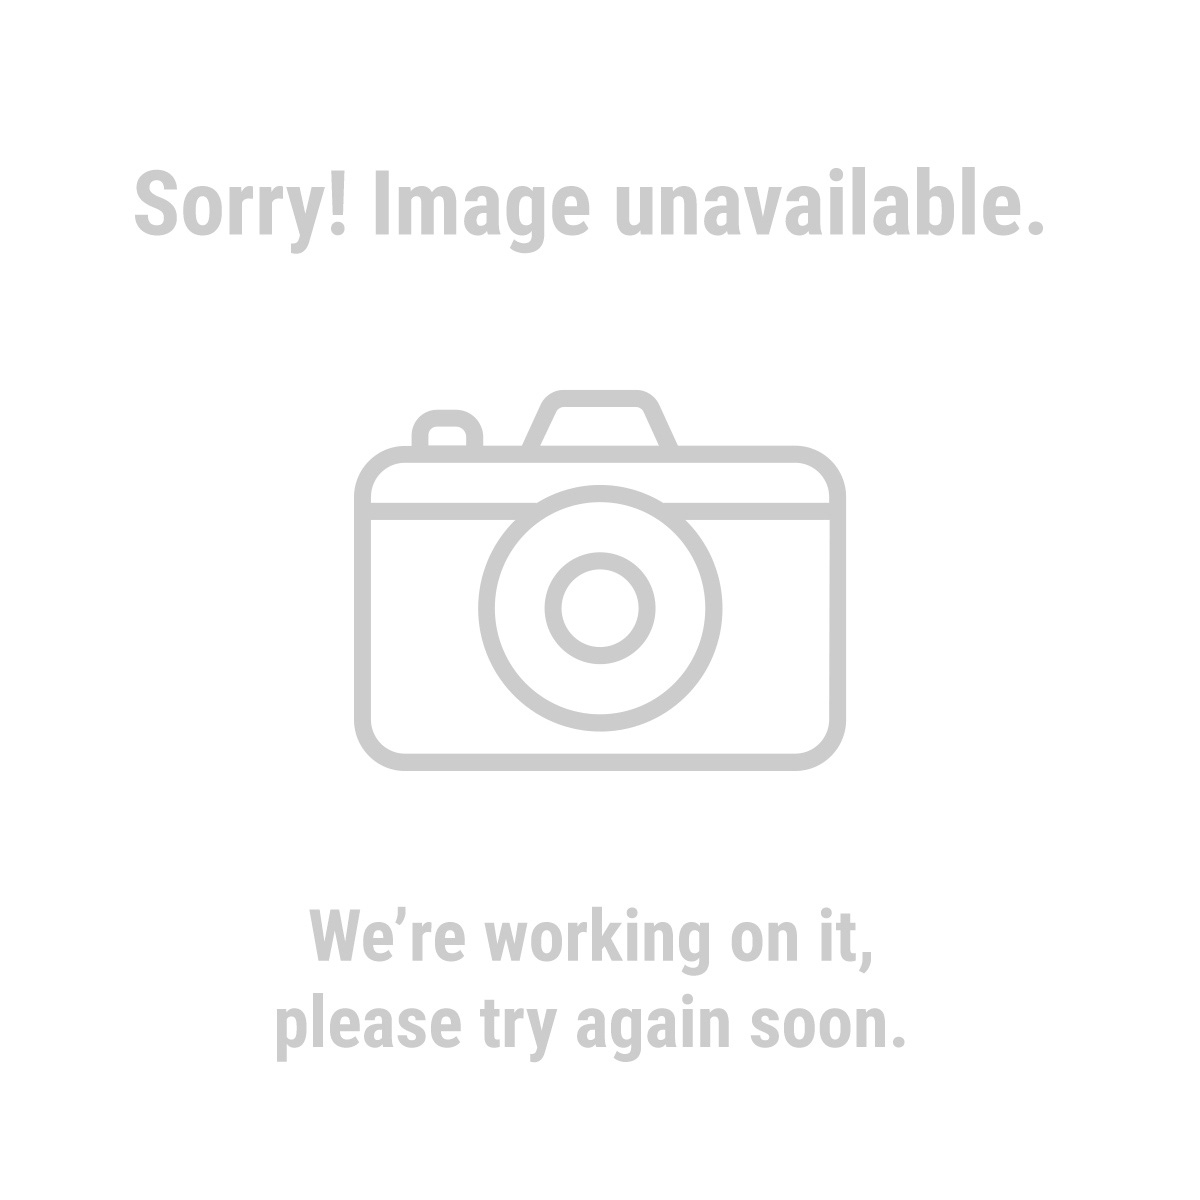 "HFT 46163 Pack of 50 15"" x 13"" All Purpose Shop Towels"